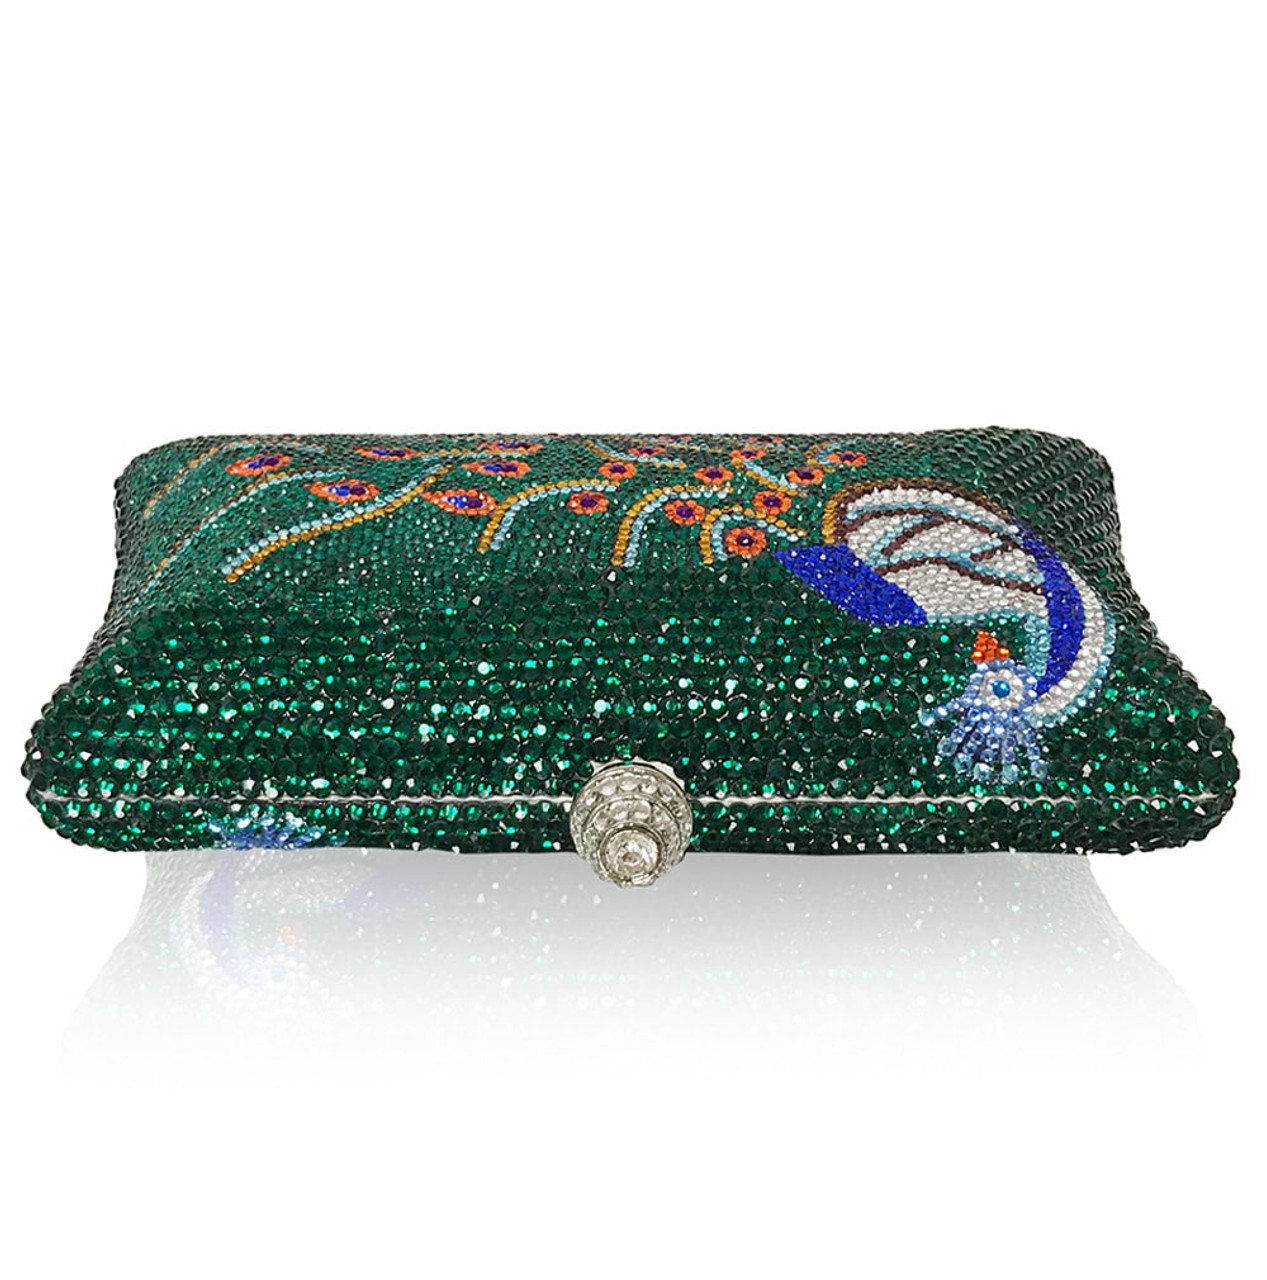 Luxury Peacock Large Clutch